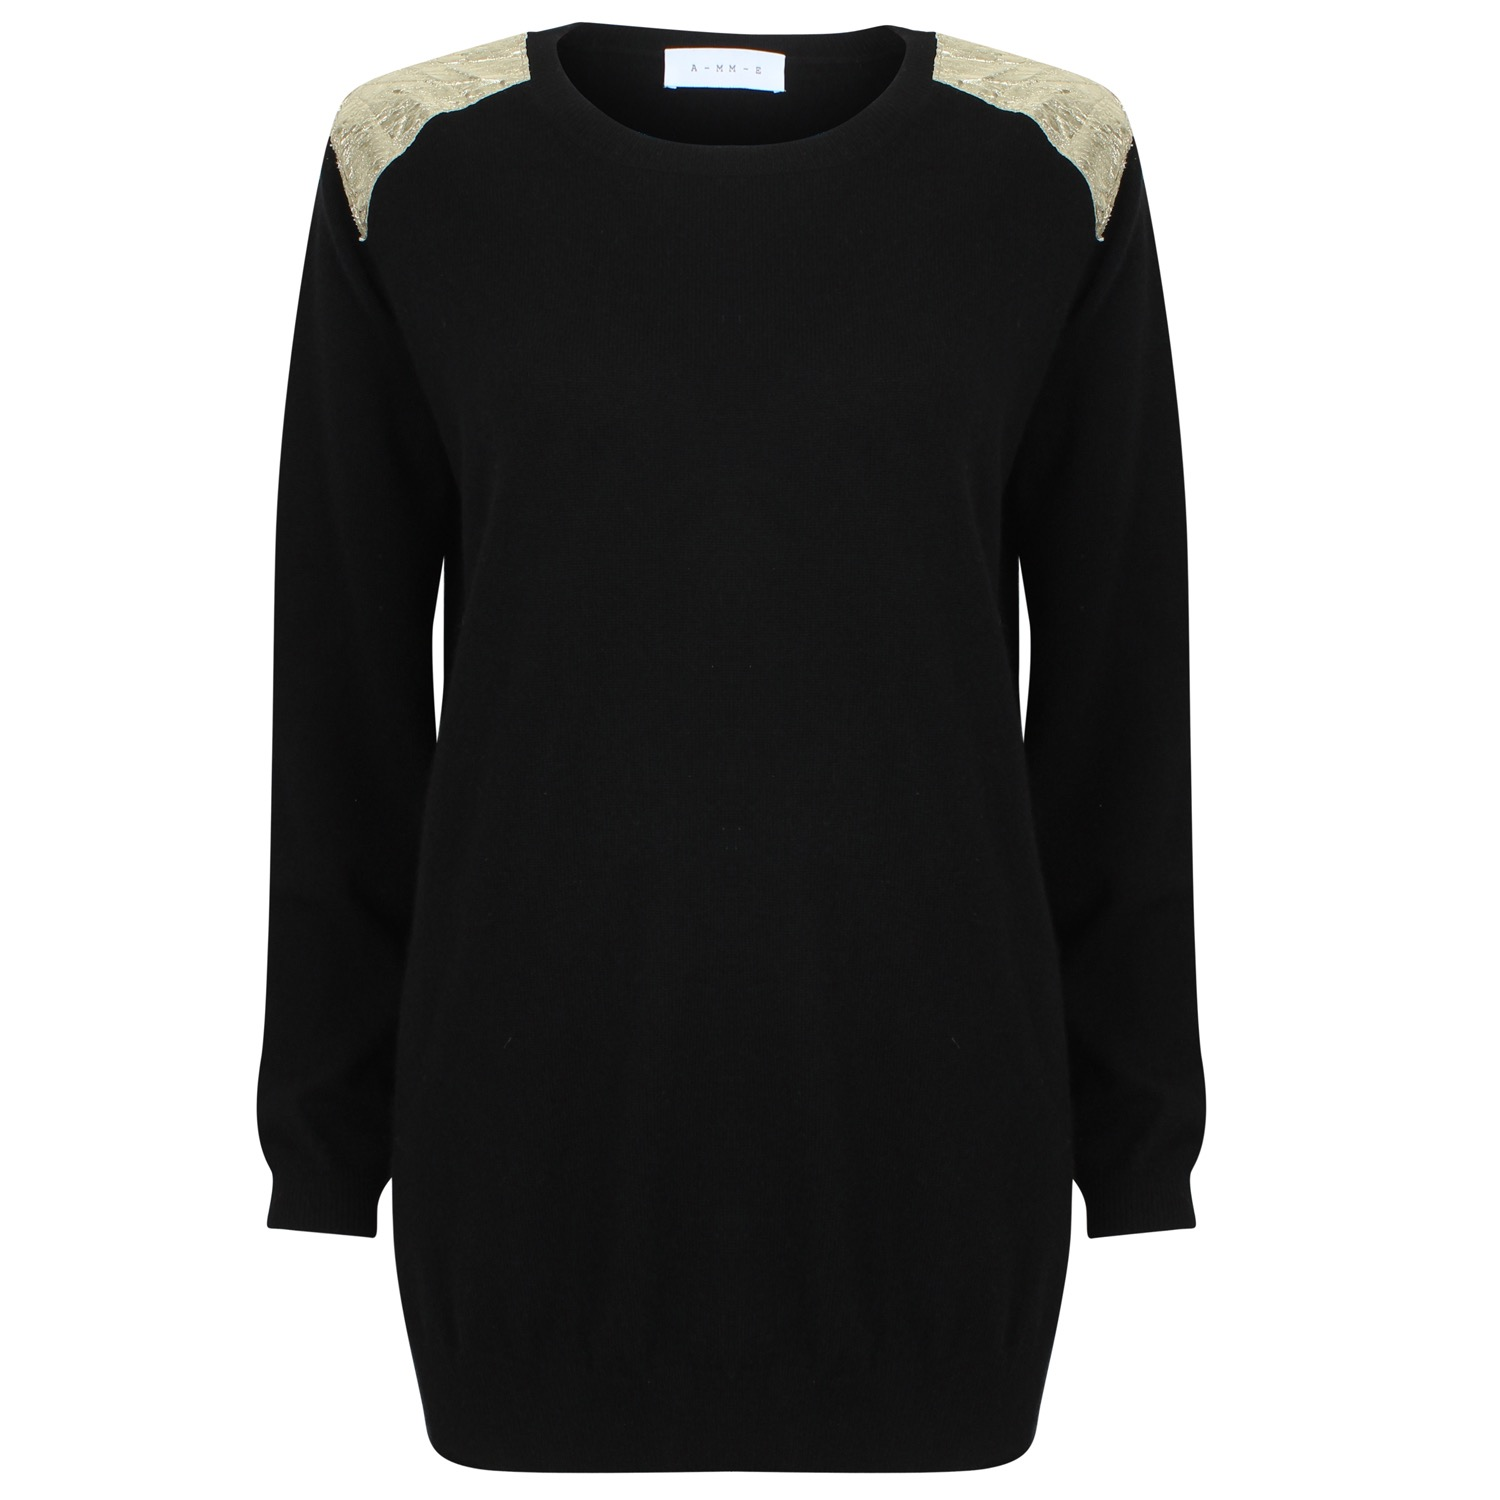 The Black & Gold Block Cashmere